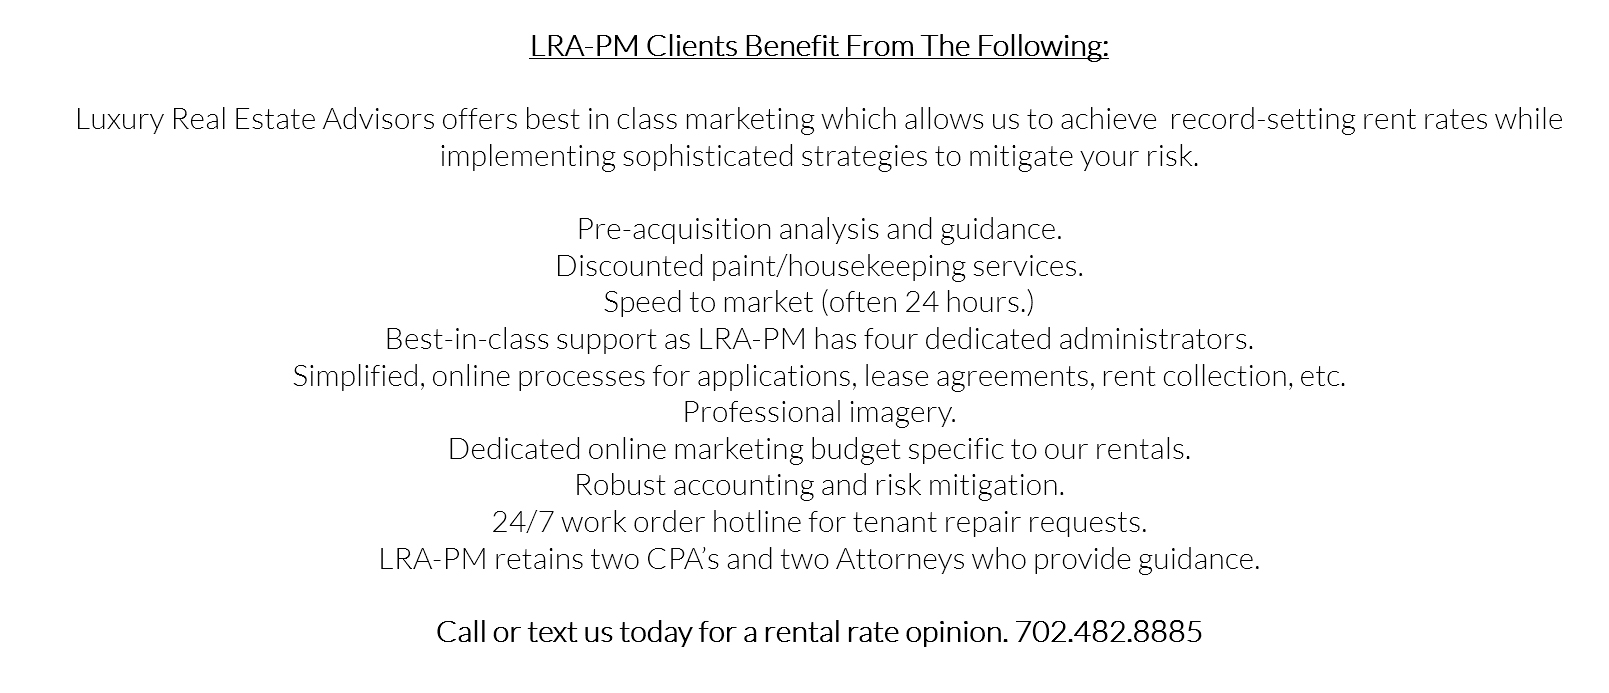 Luxury Real Estate Advisors Management Services